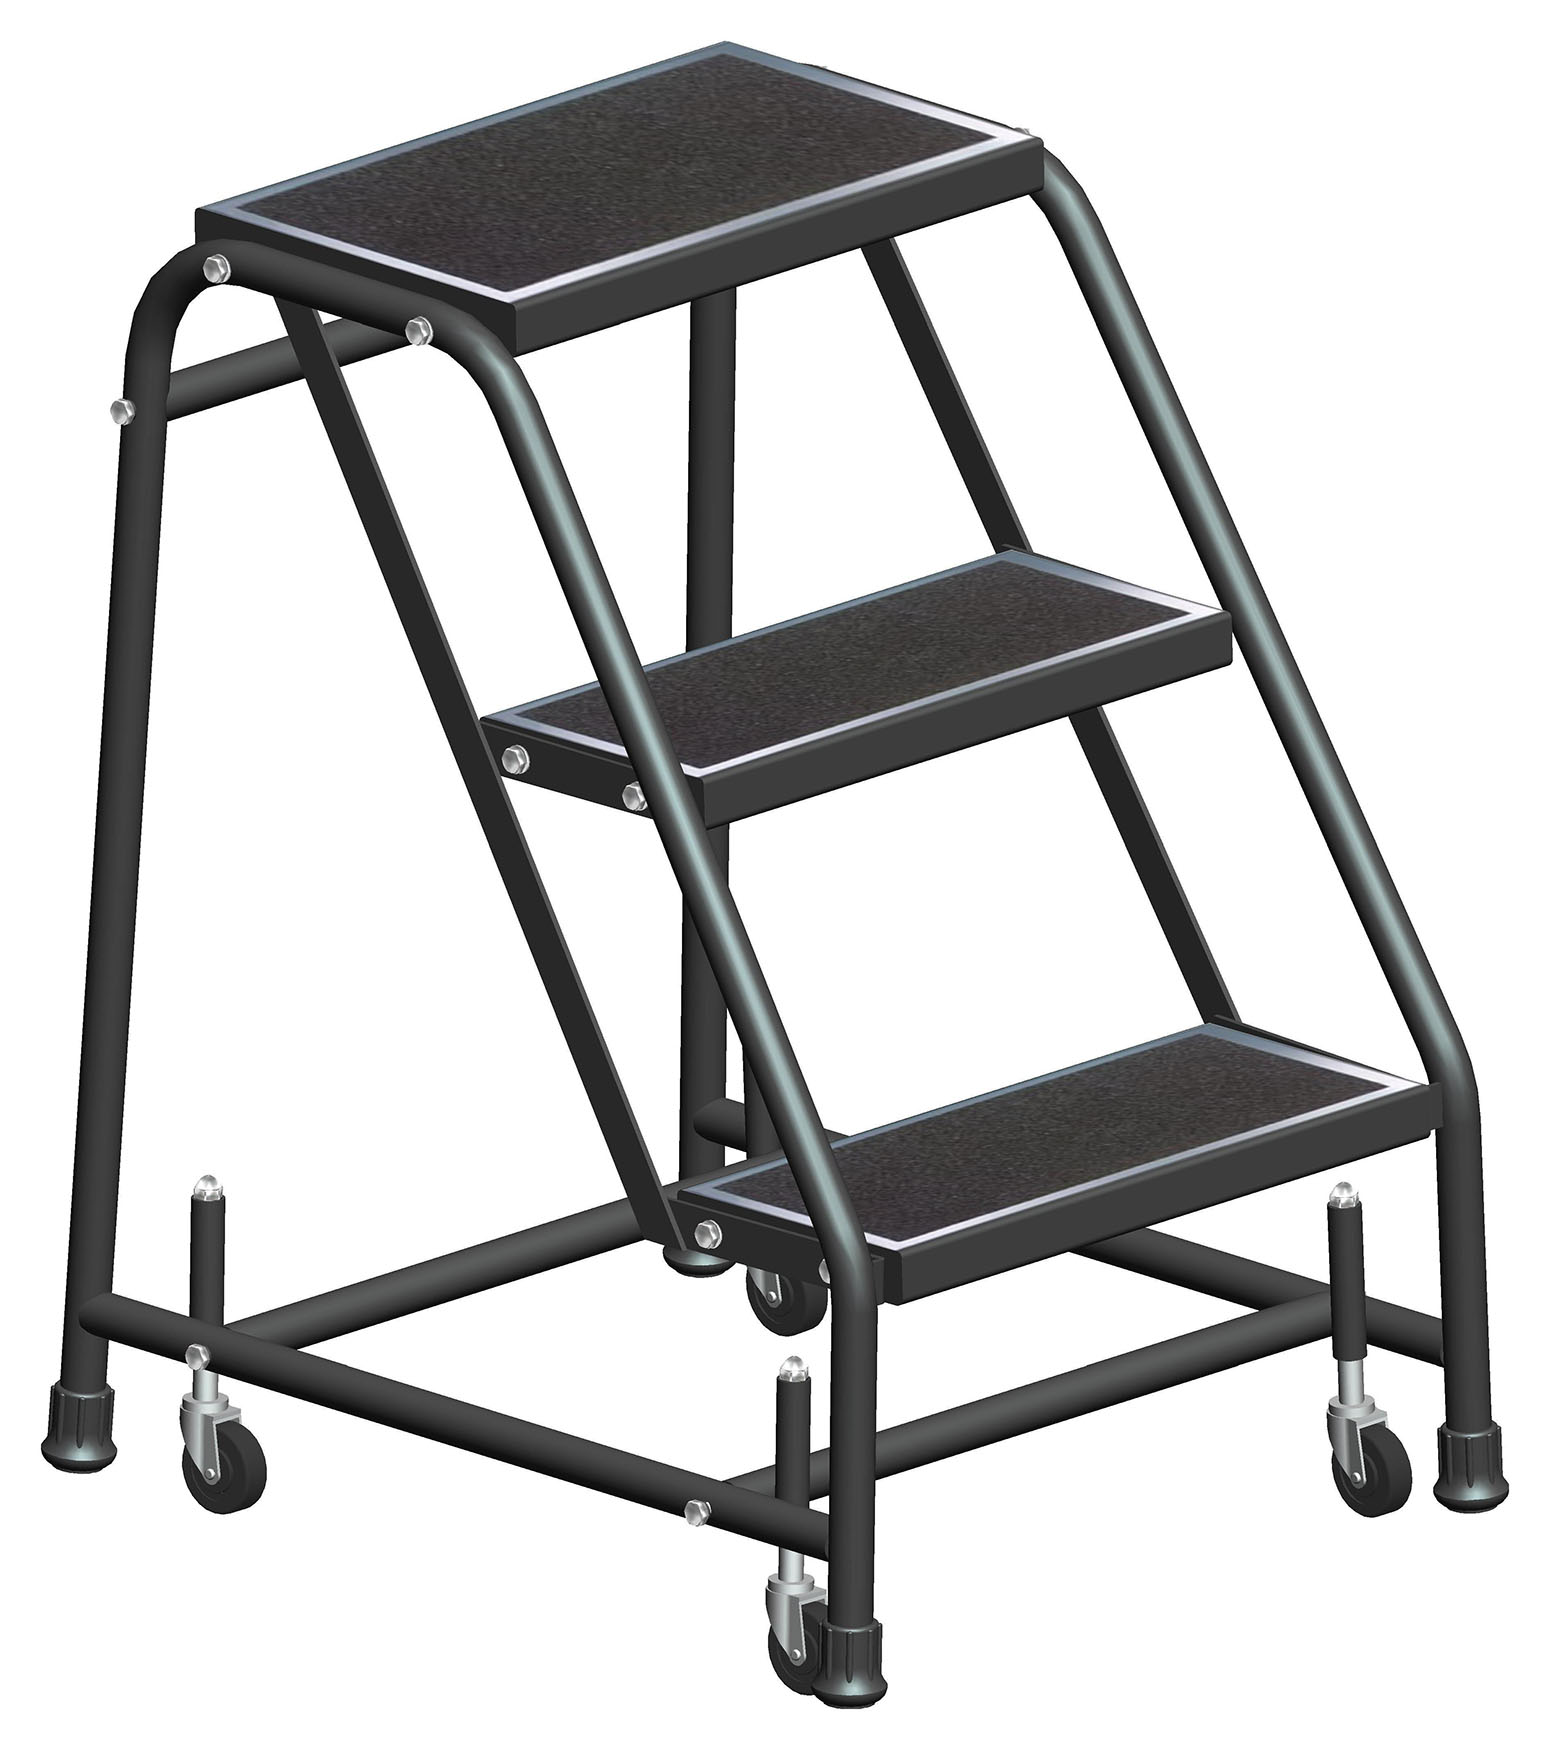 Standard Rolling Ladders With Spring Loaded Casters